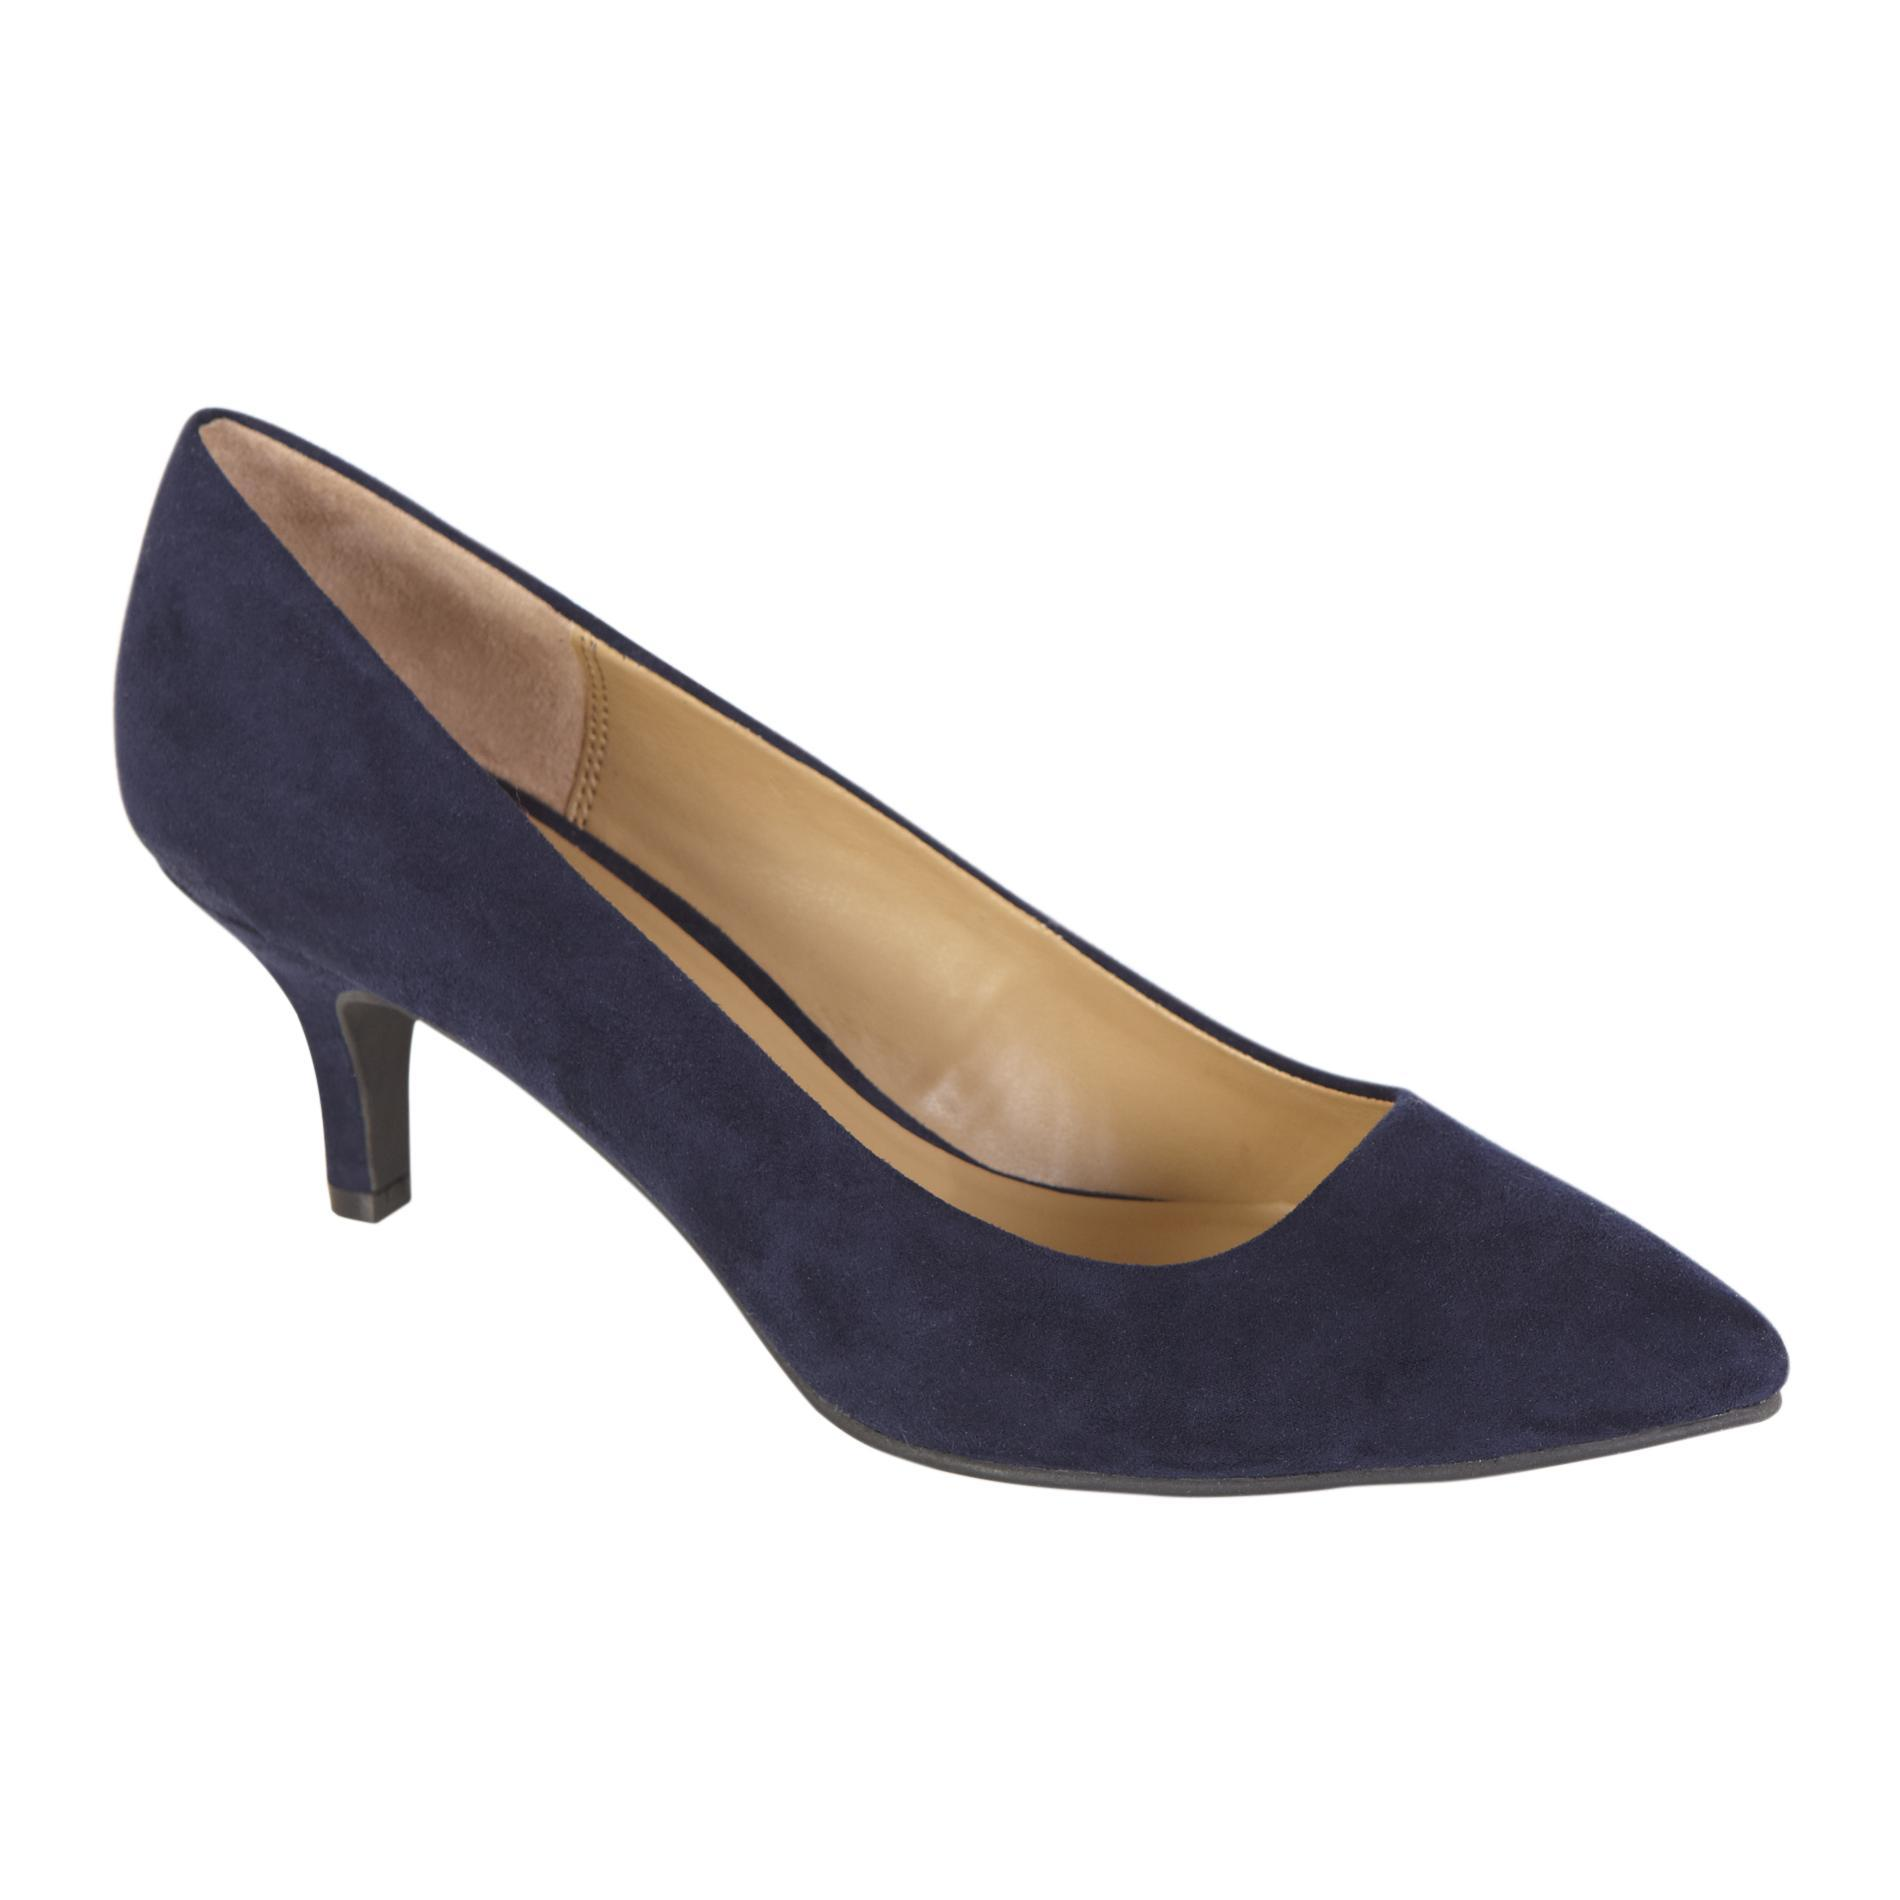 Women's Dress Shoe Zoey - Faux Suede Navy